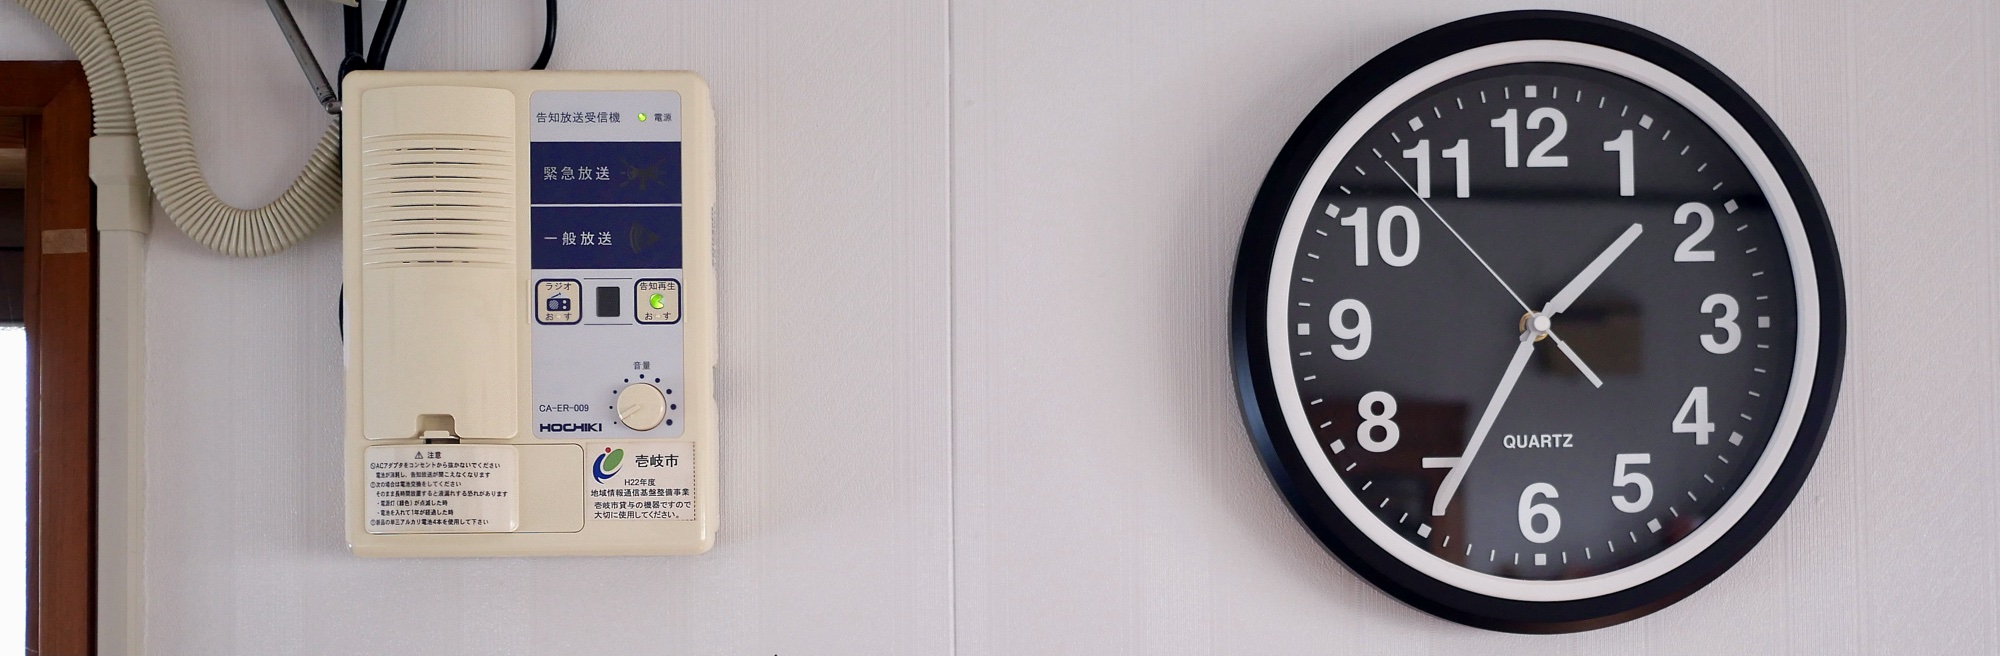 On a wall there is a home receiver on the left and a standard clock on the right